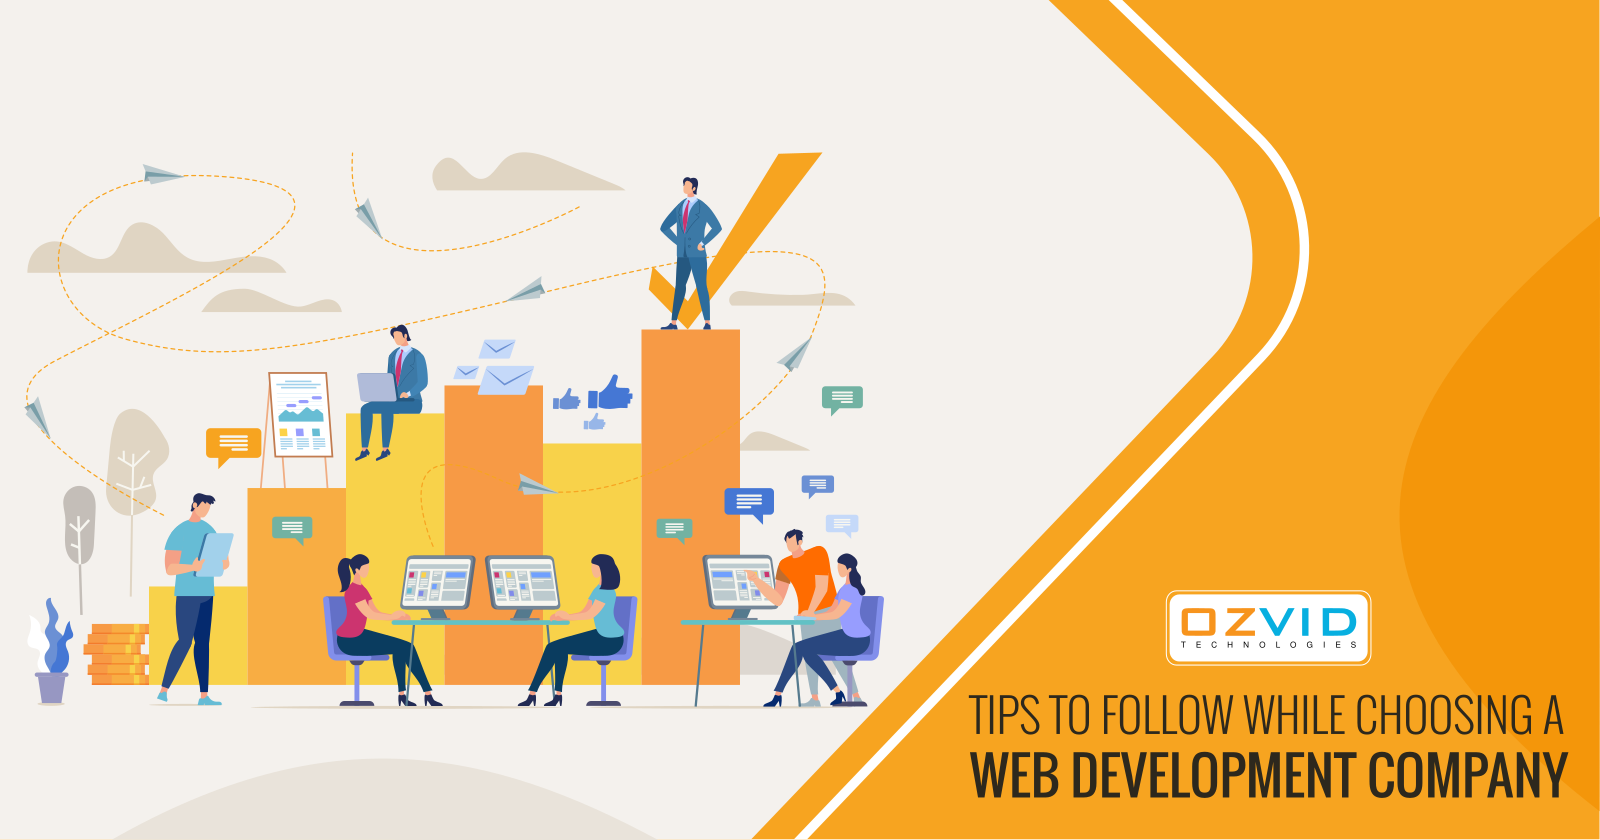 5 Simple Tips to Follow While Choosing a Web Development Company